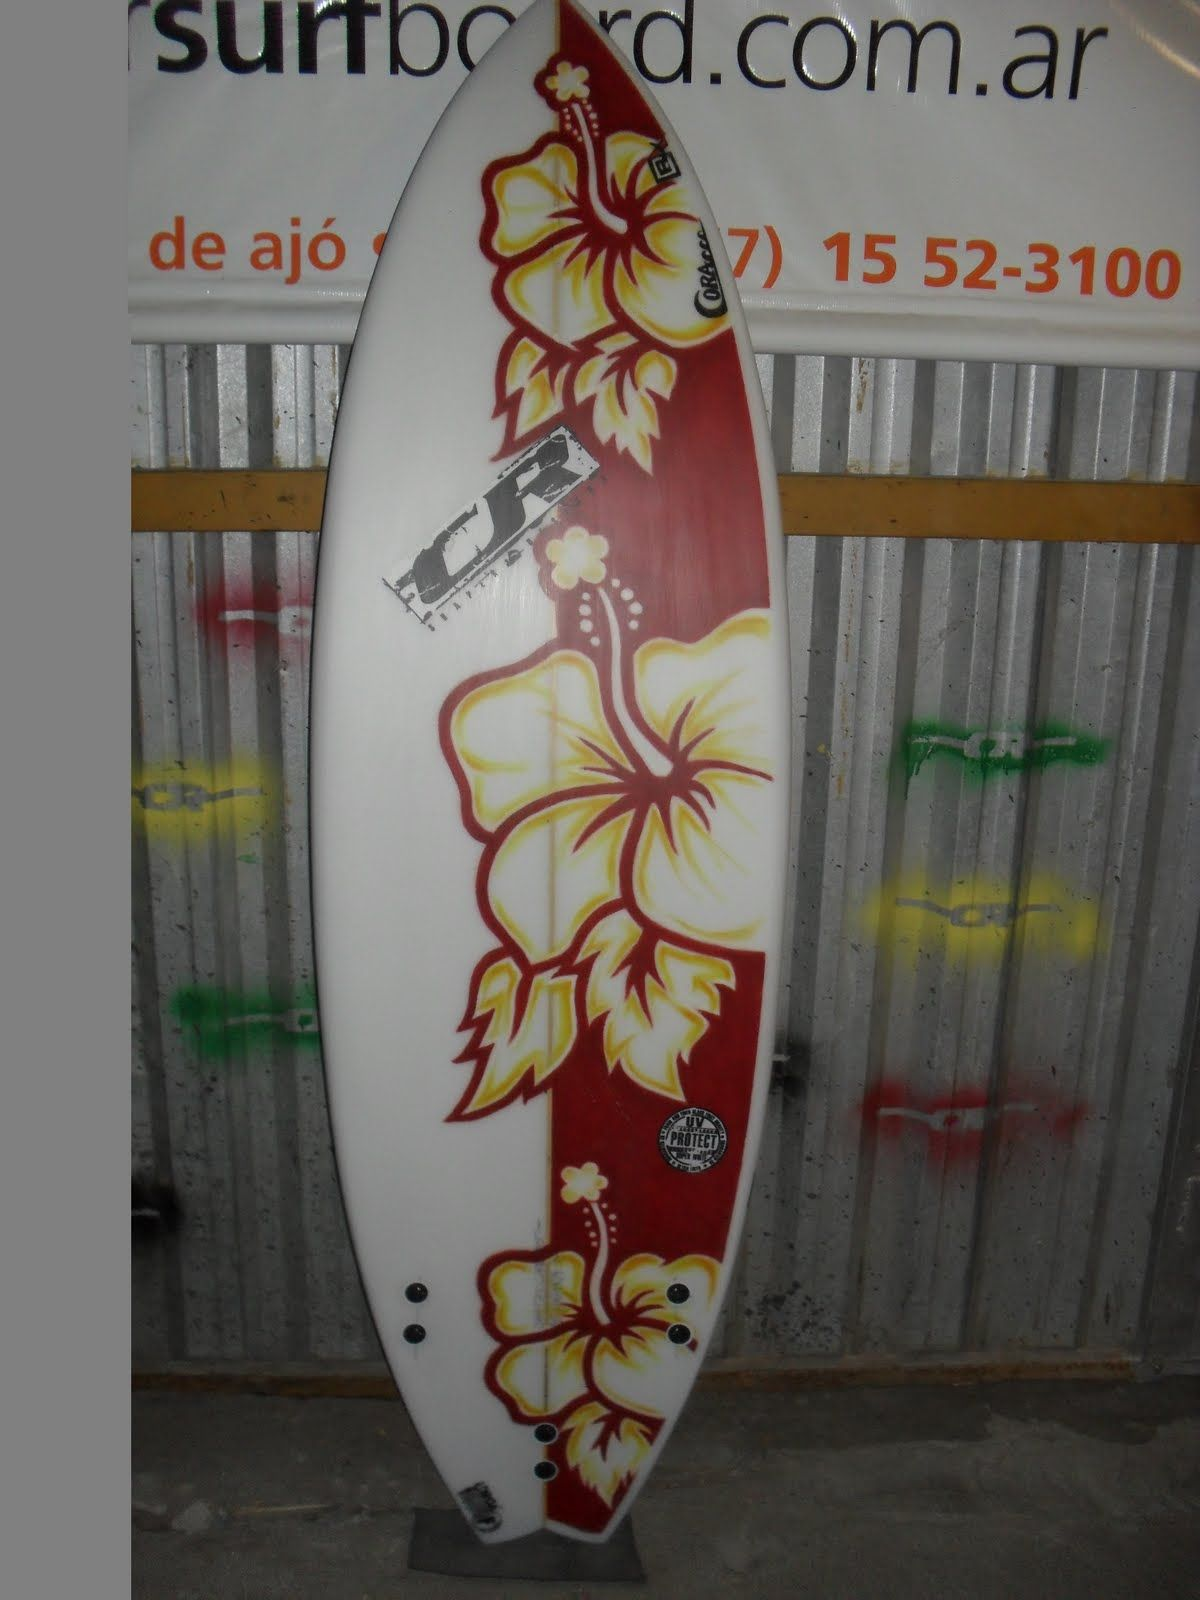 painted+surfboards | SURFBOARD HAND PAINT ART BY CORA FERNANDEZ ...